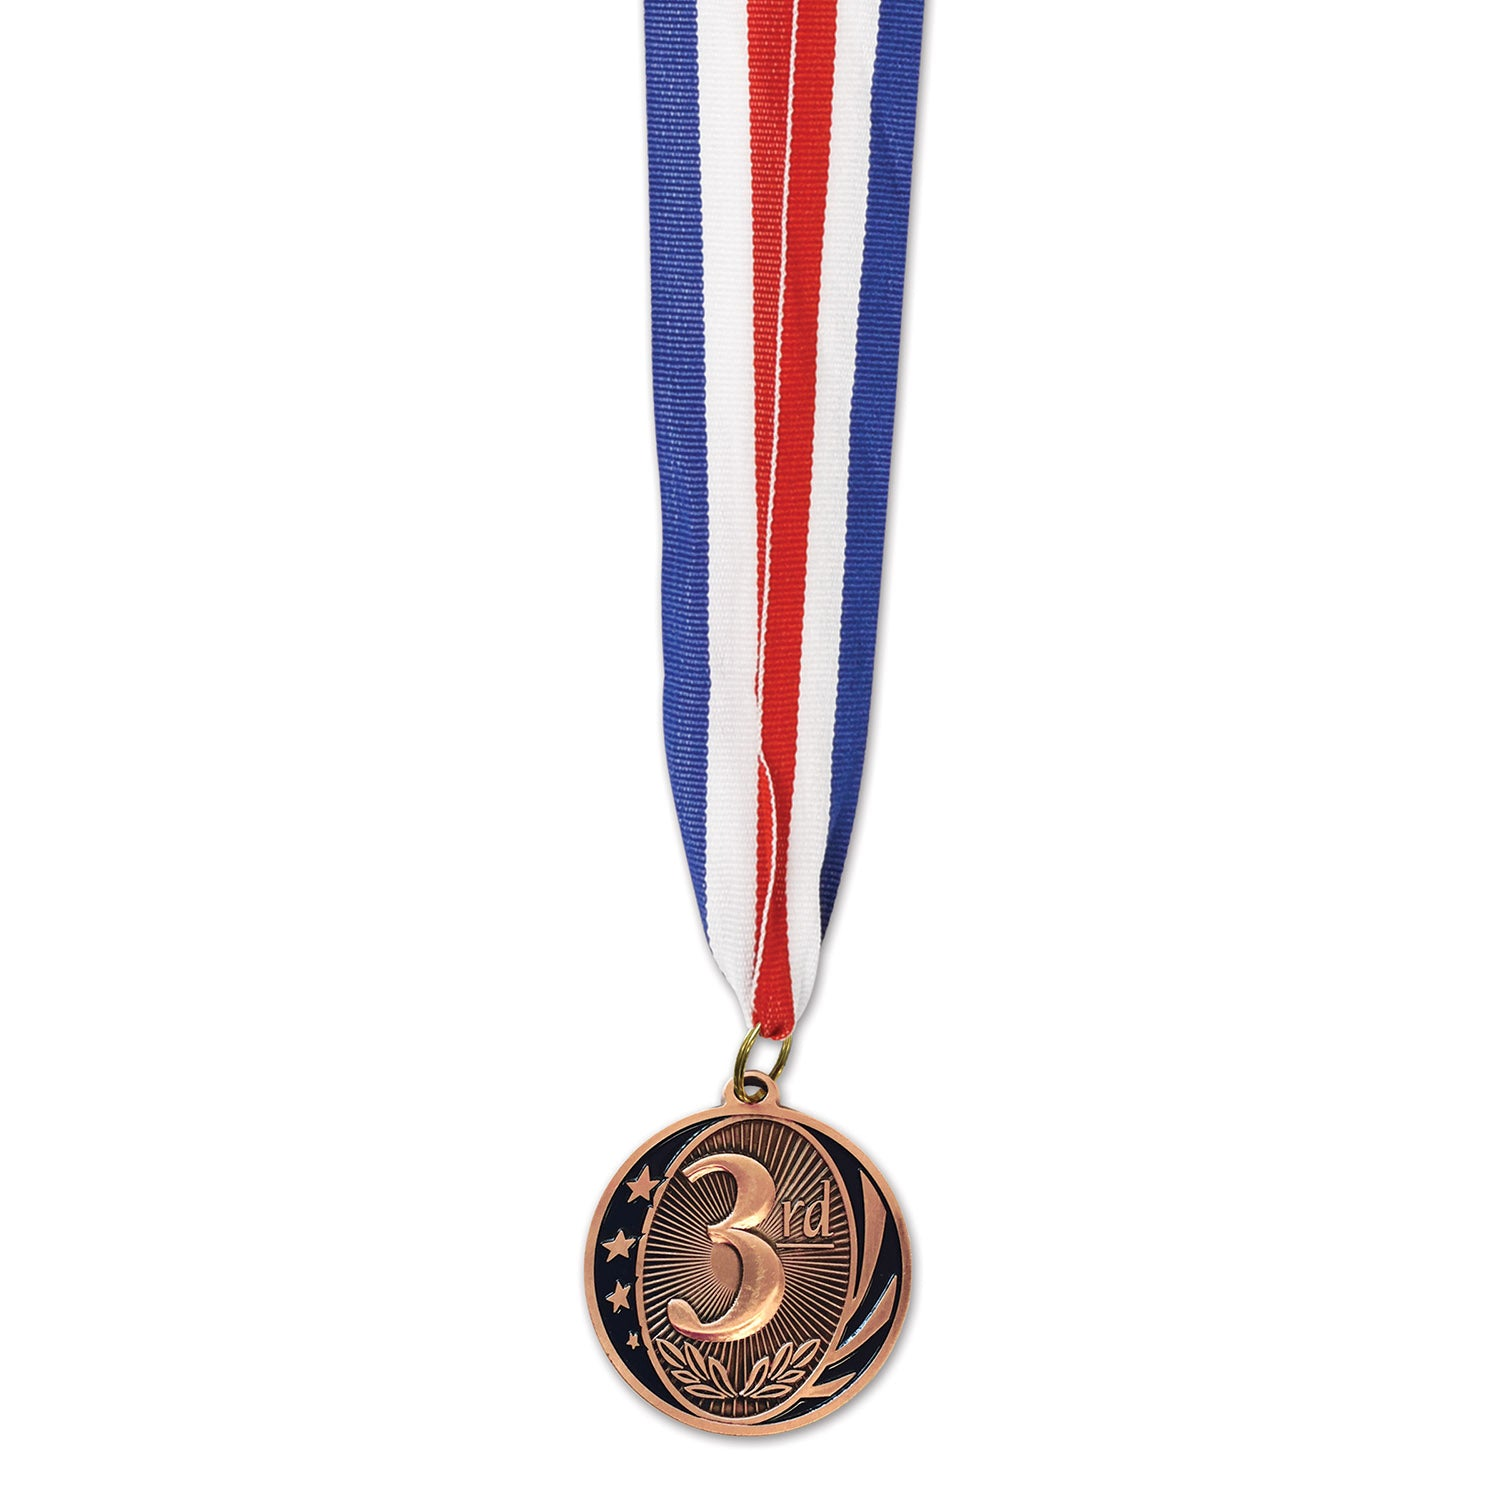 3rd Place Medal With Ribbon 5cm